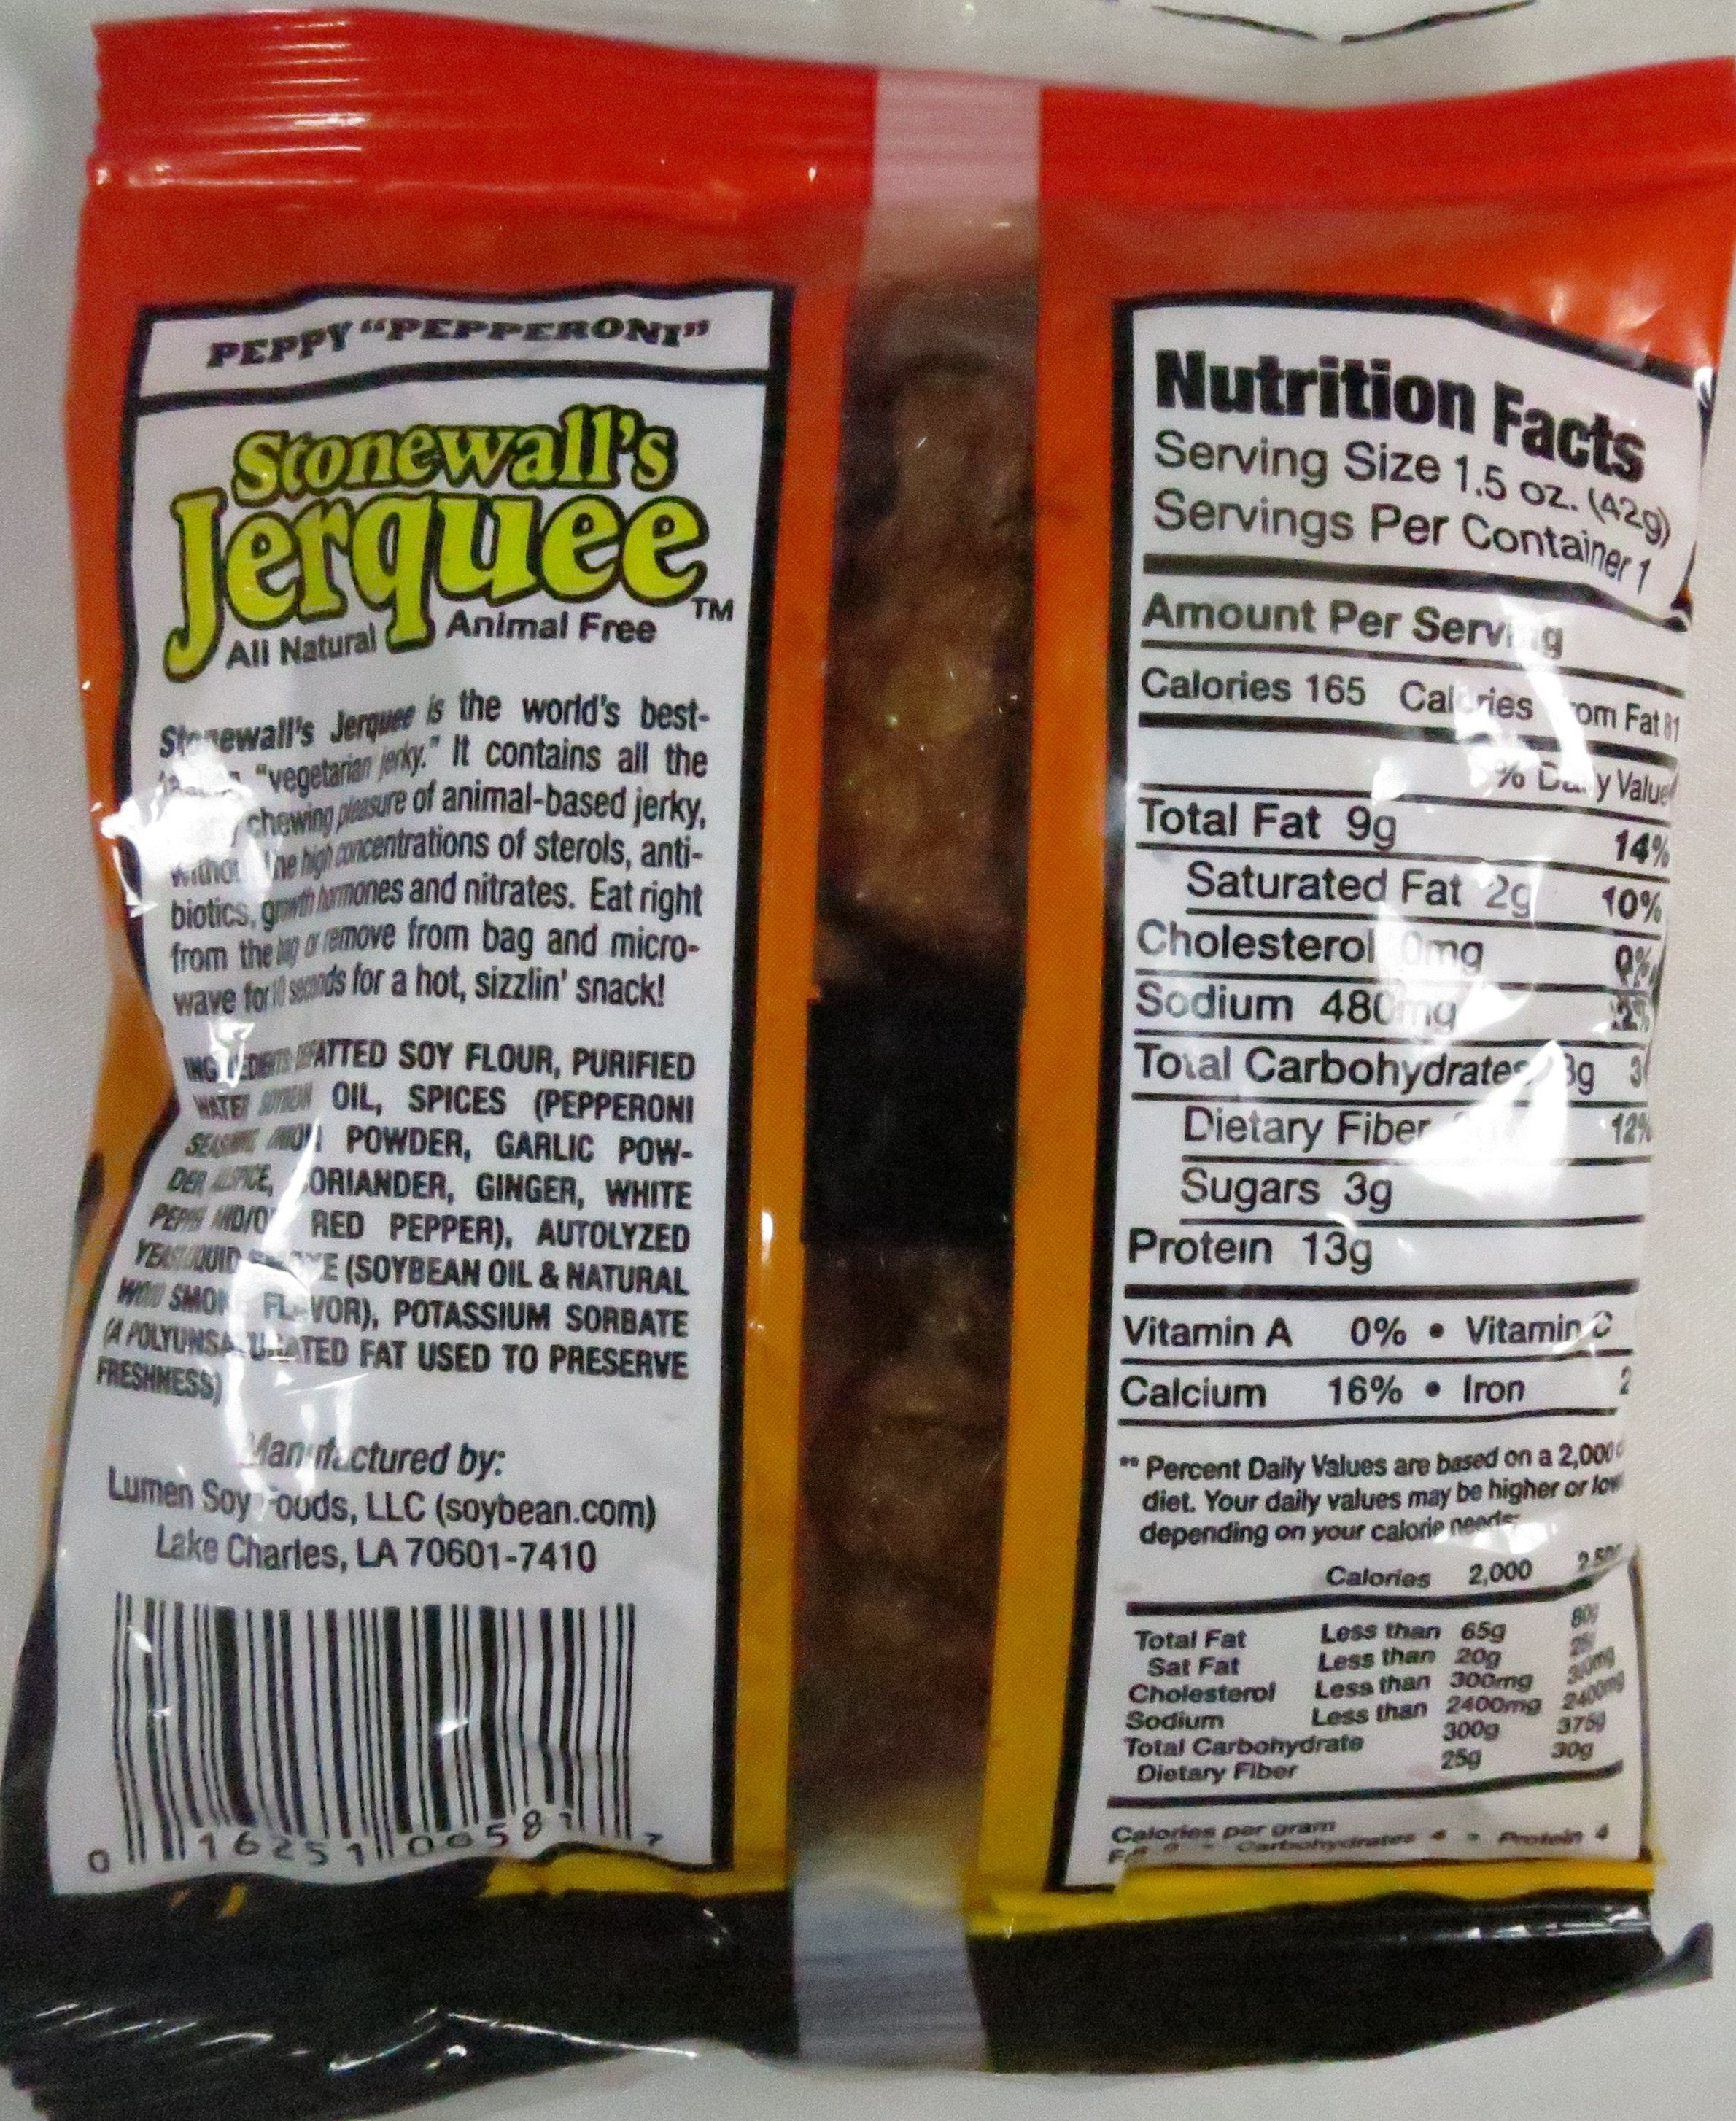 Discover How Stonewall S Jerquee Peppy Pepperoni Vegan Jerky Fared In A Jerky Review Http Jerkyingredients Com 2015 10 21 Stonew Vegan Jerky Jerky Vegan